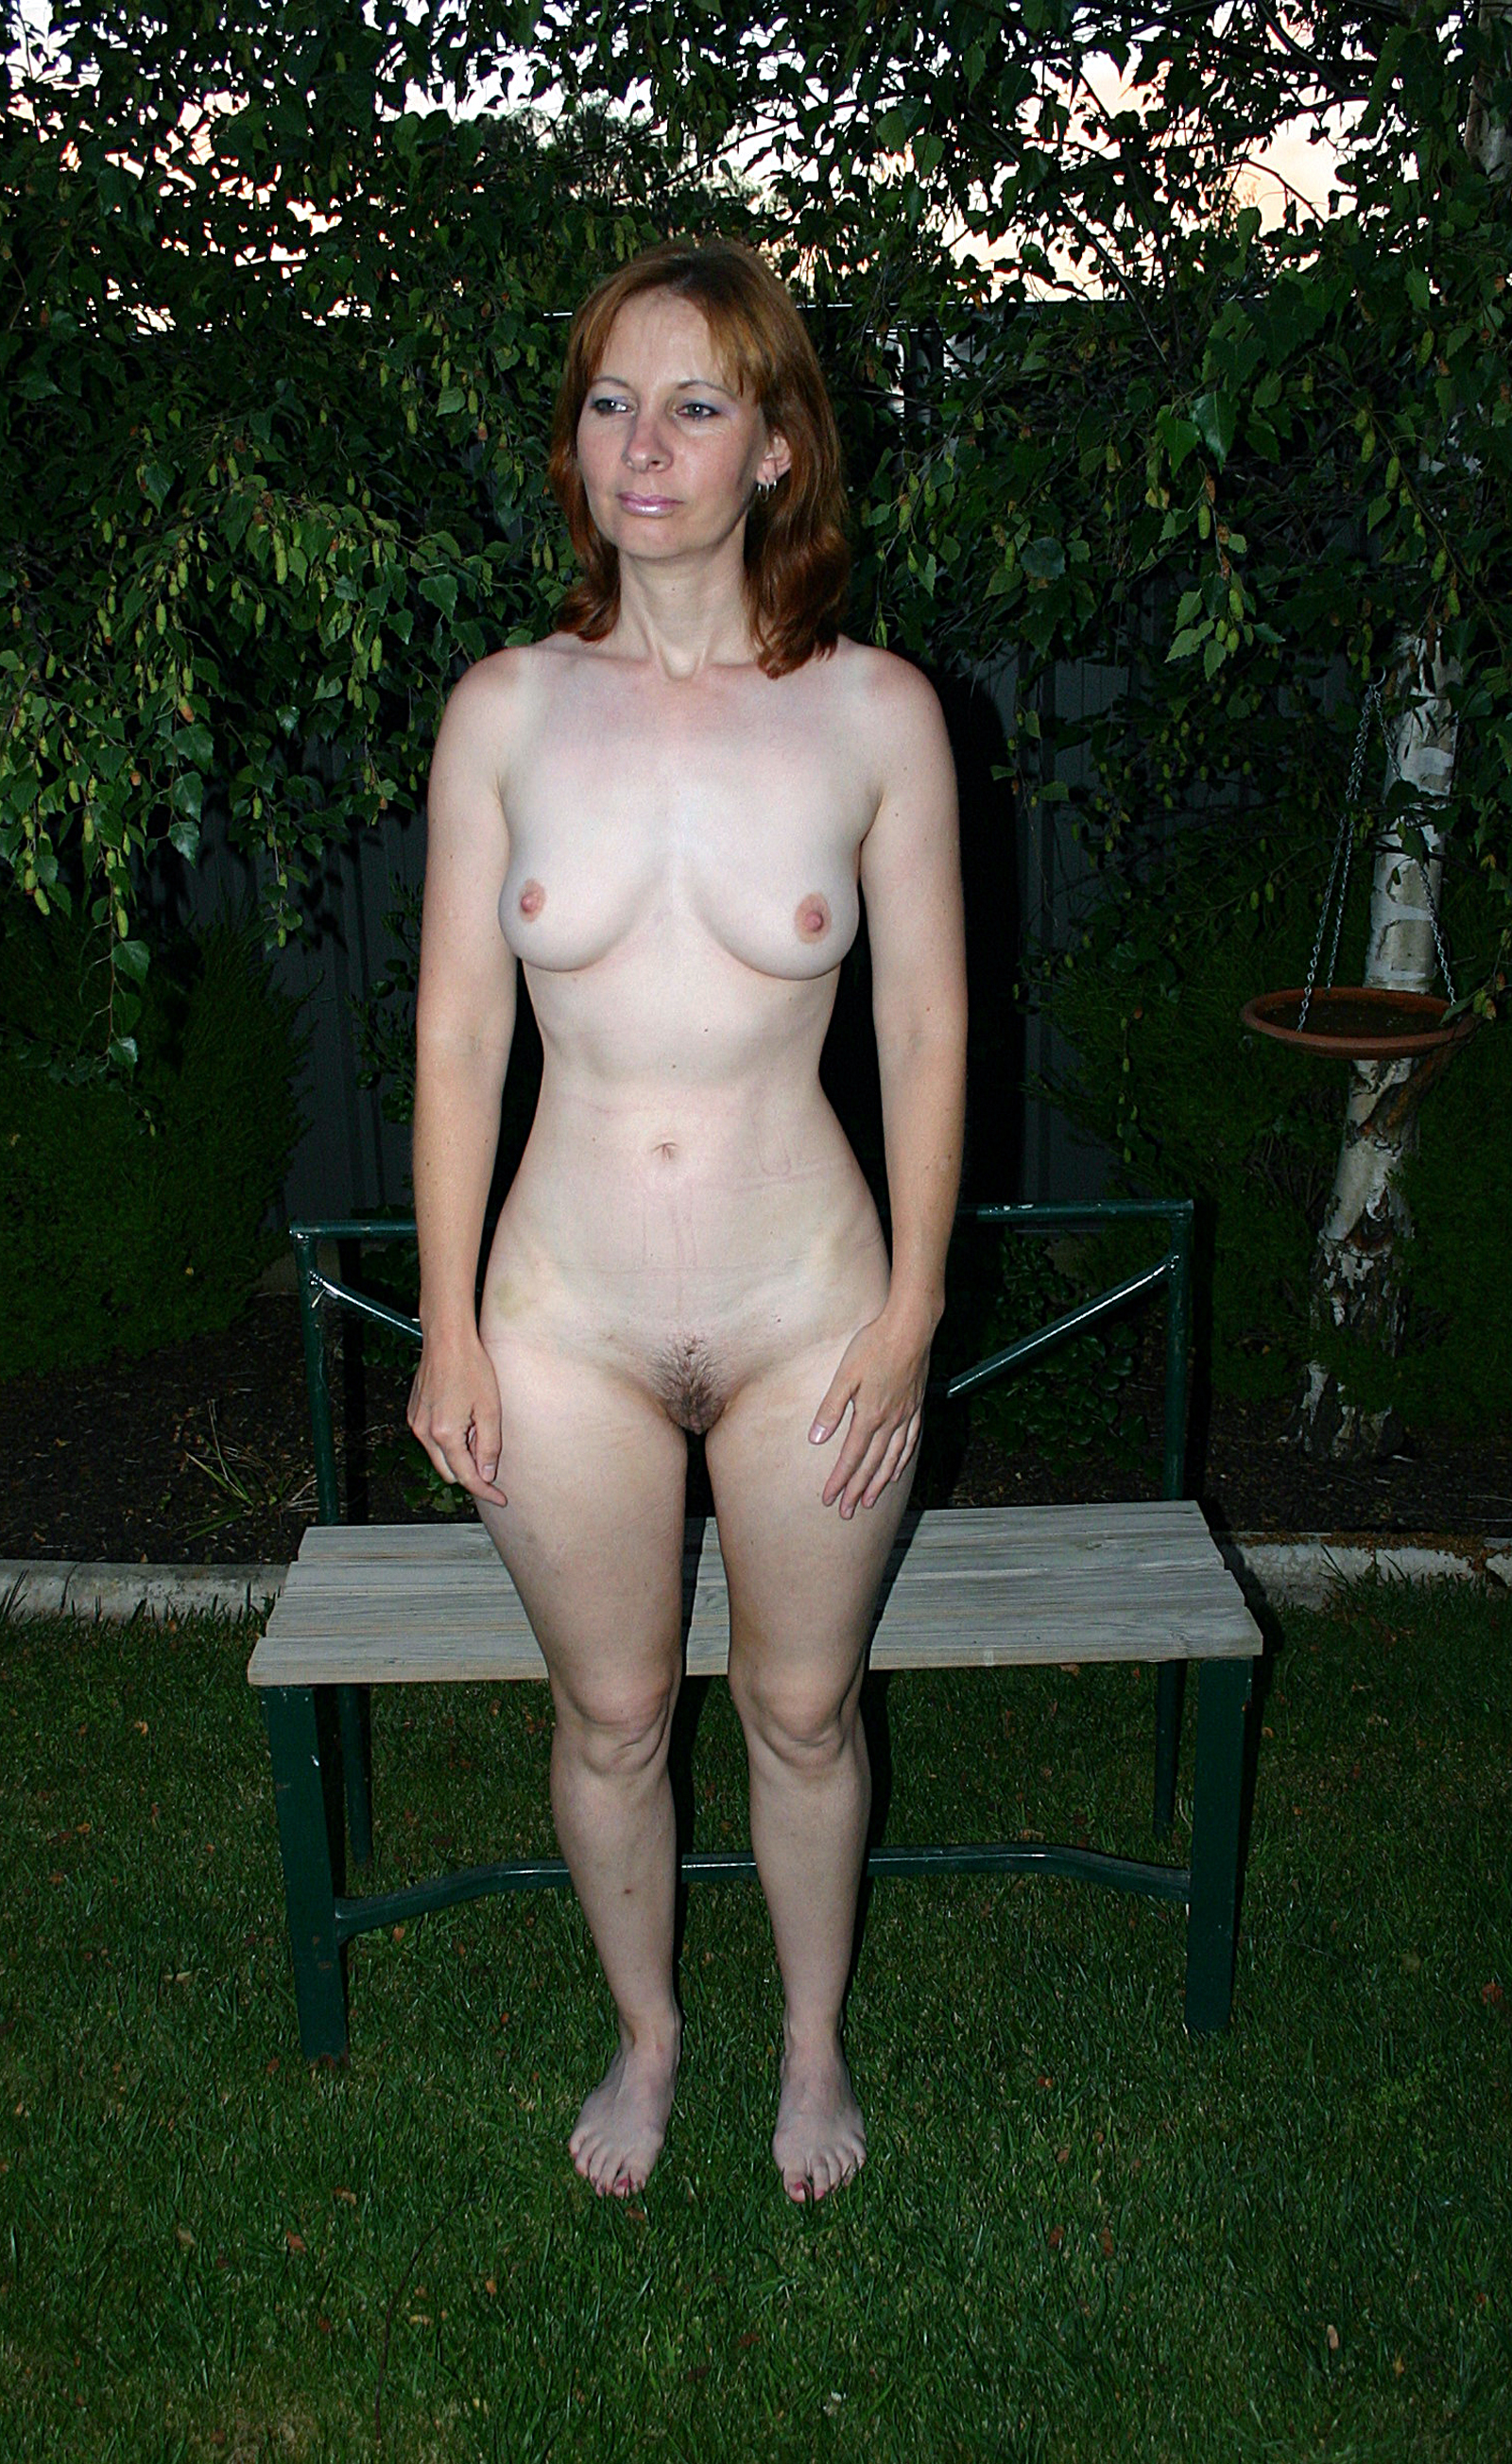 Pussy naked mature woman standing fat